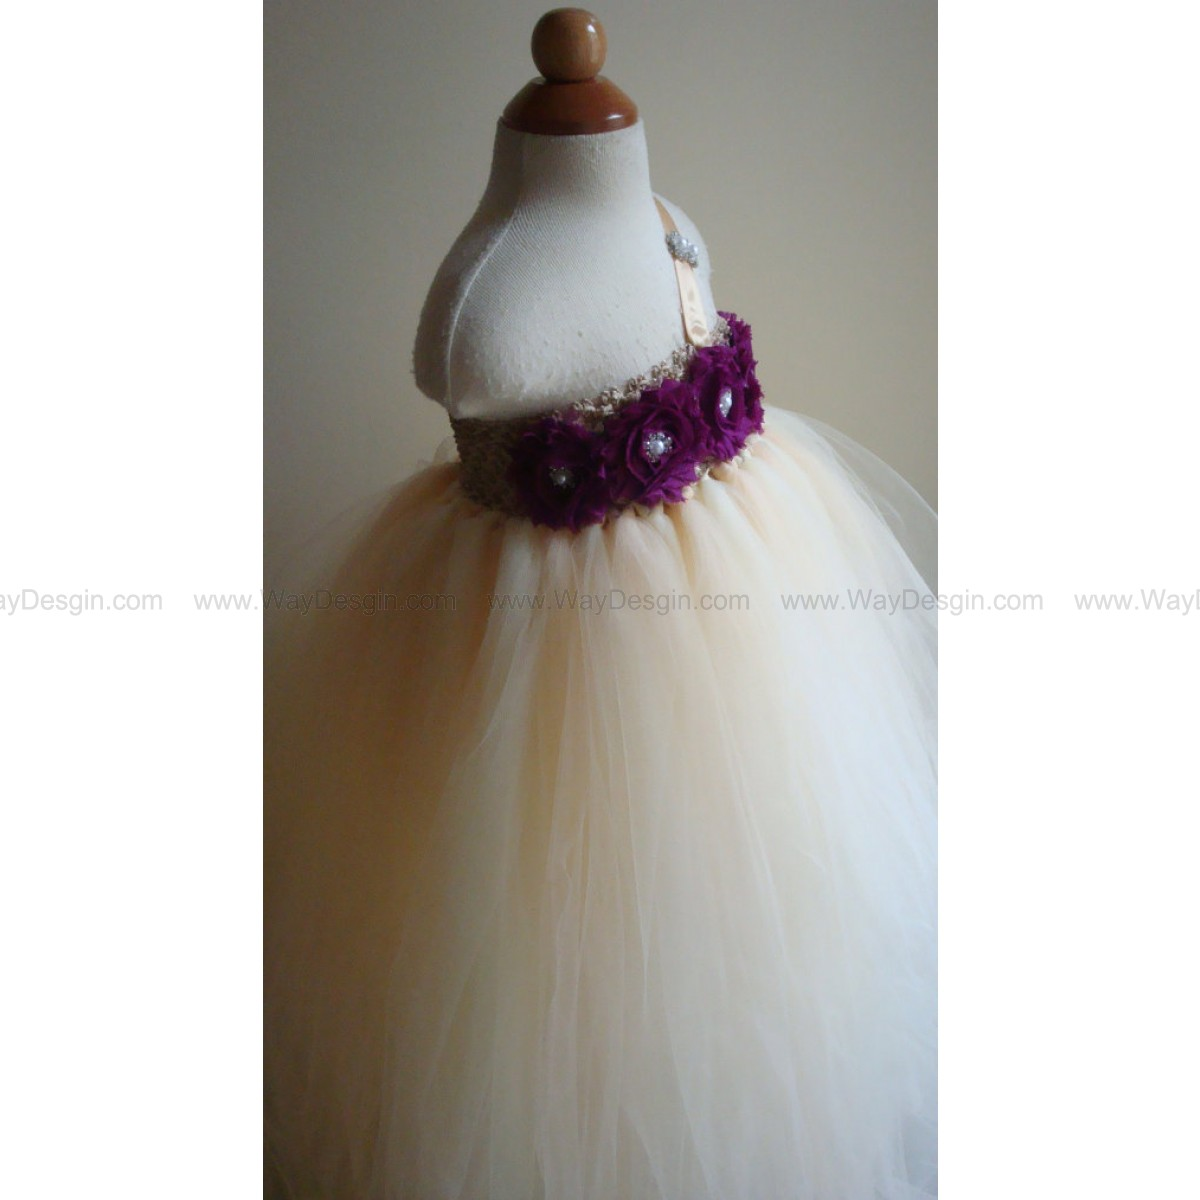 Ivory flower girl dress, tutu dress, plum, silver,Newborn,wedding,birthday,toddler,child,baby,tutu dress